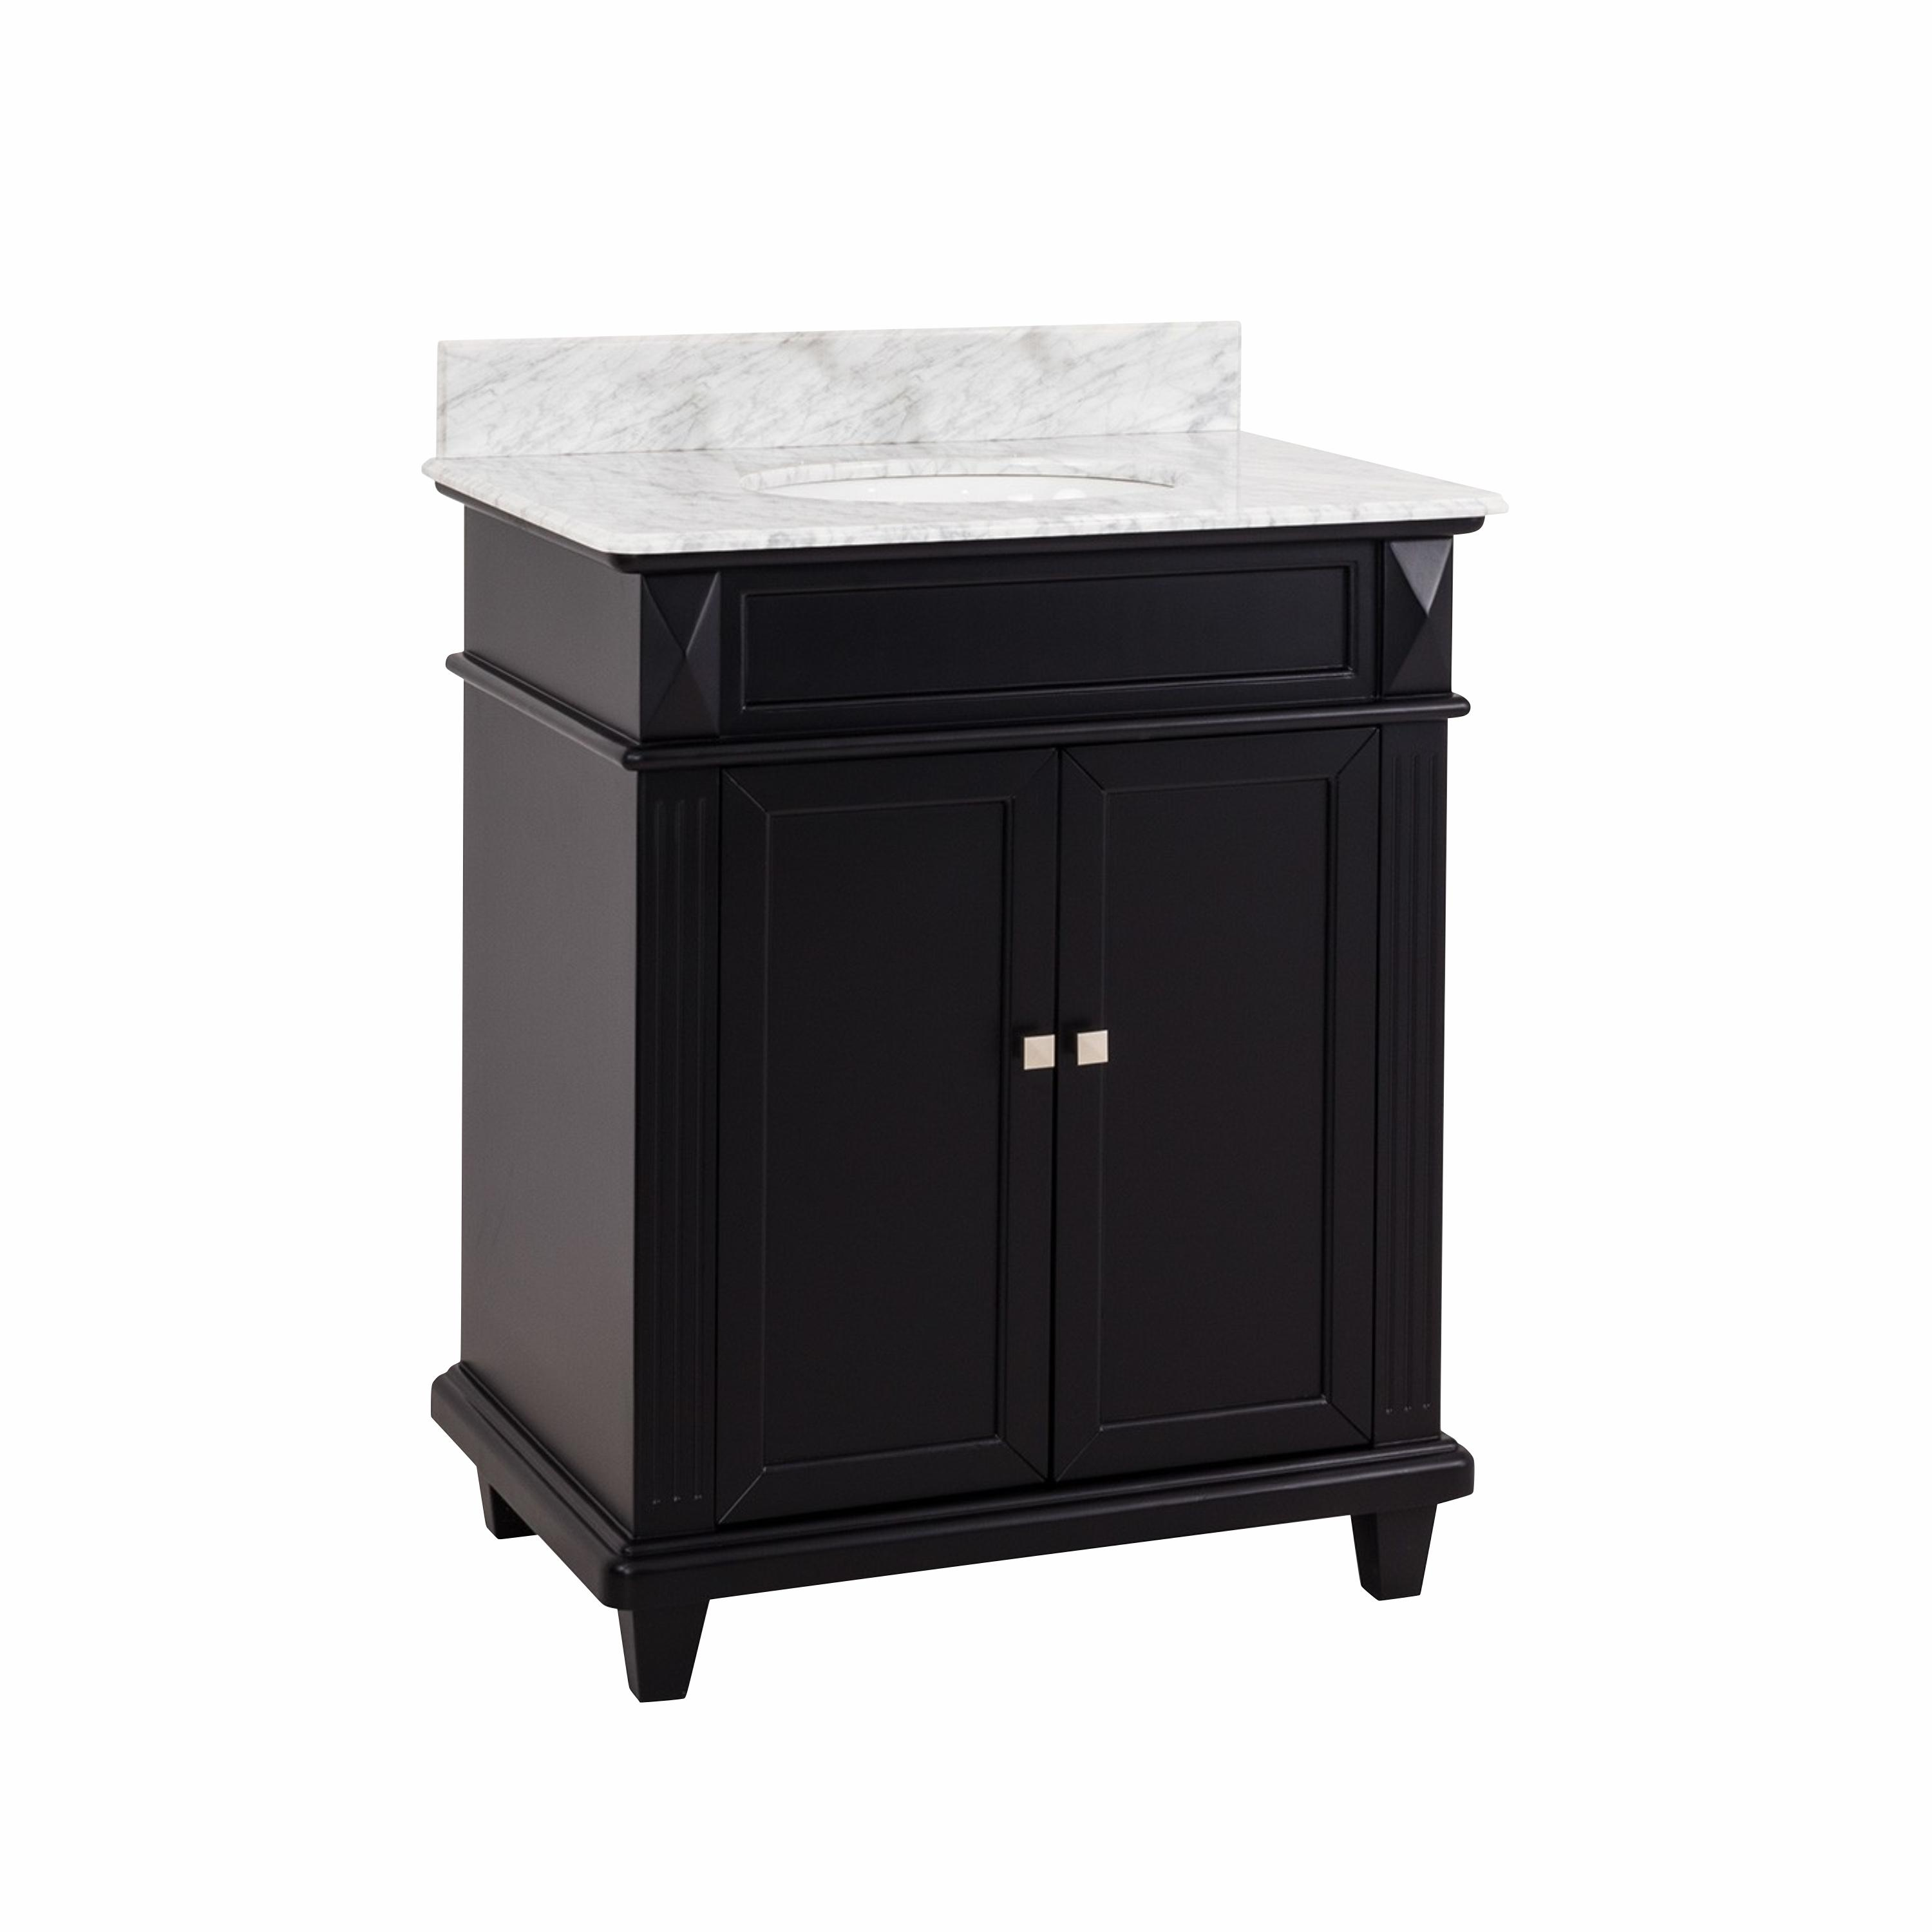 Elements Douglas Black 30 Bathroom Vanity Cabinet With White Marble Countertop And Sink Bowl